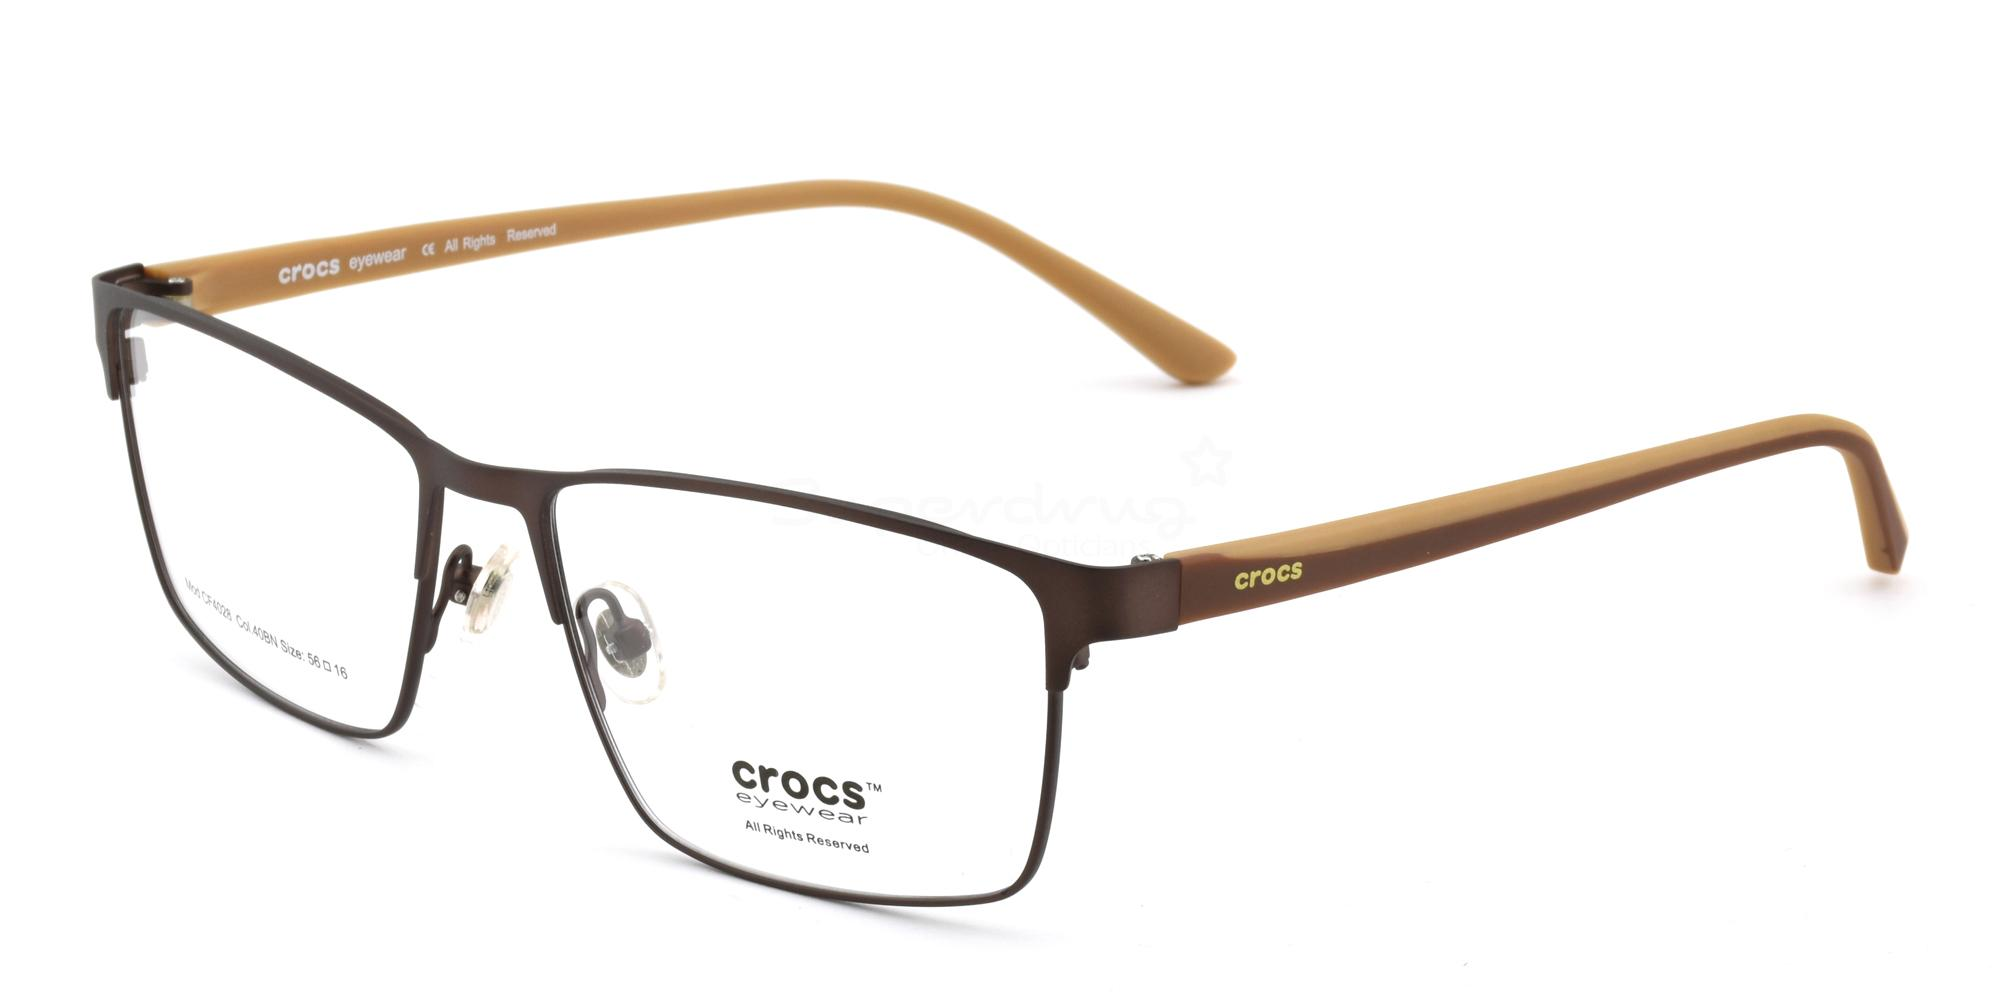 40BN CF4028 Glasses, Crocs Eyewear